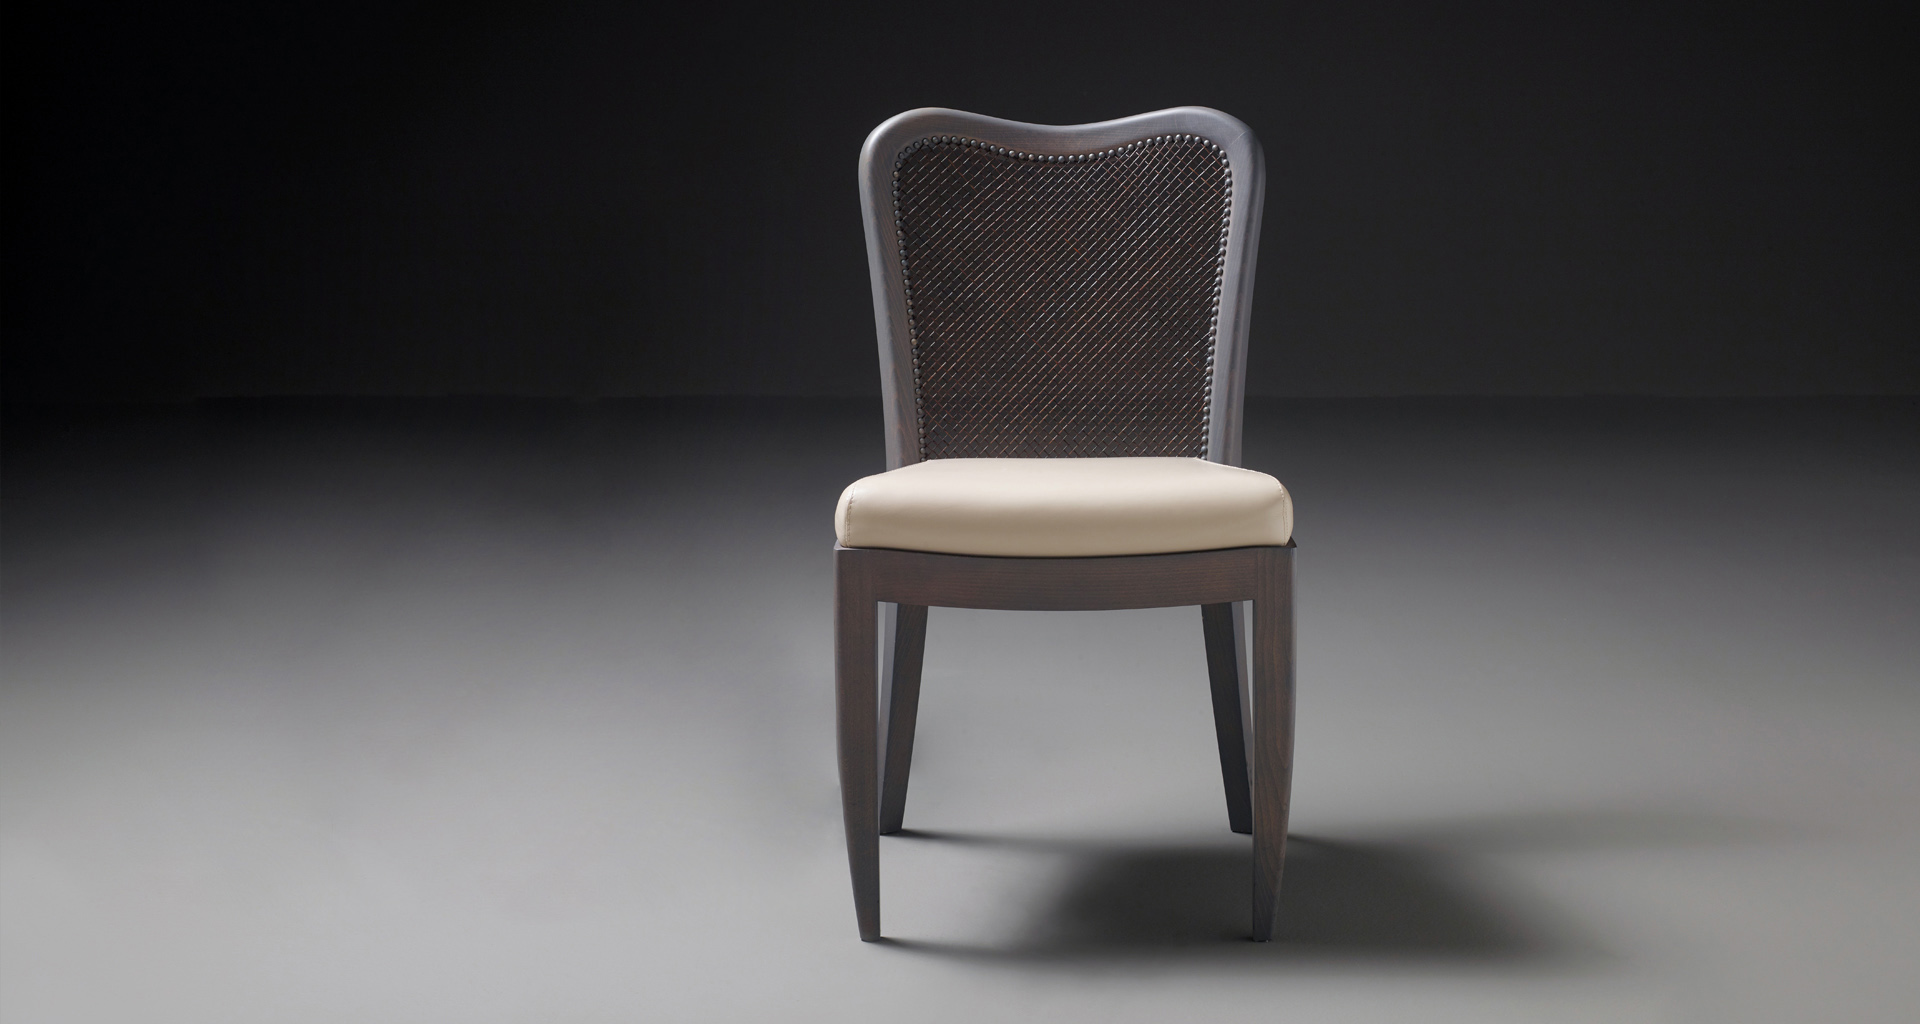 Panama is a wooden chair with leather rope back that can be customized, from Promemoria's catalogue | Promemoria